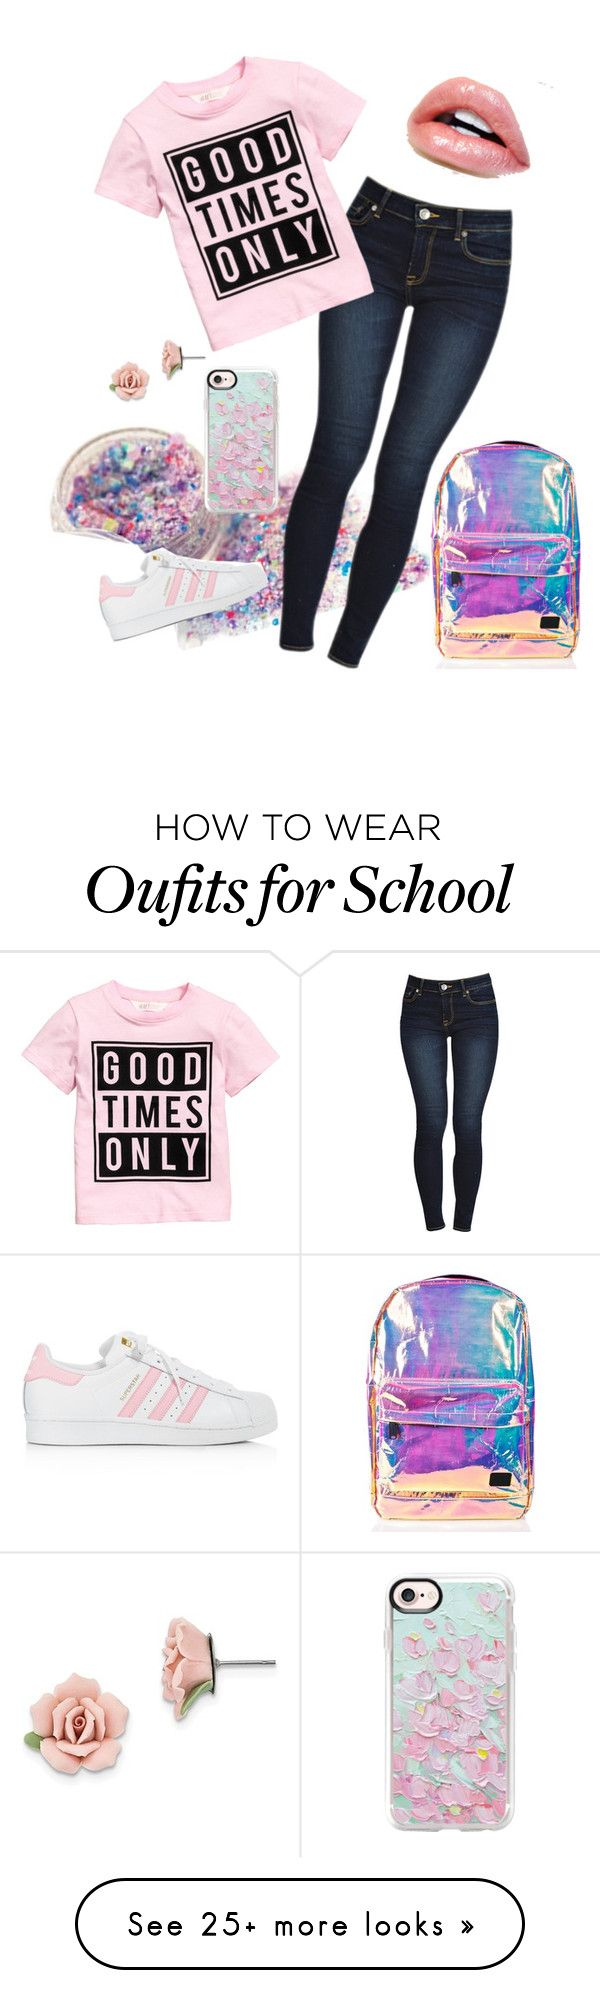 """""""School day"""" by fashionstudio101 on Polyvore featuring Spiral, adidas, Casetify and 1928"""